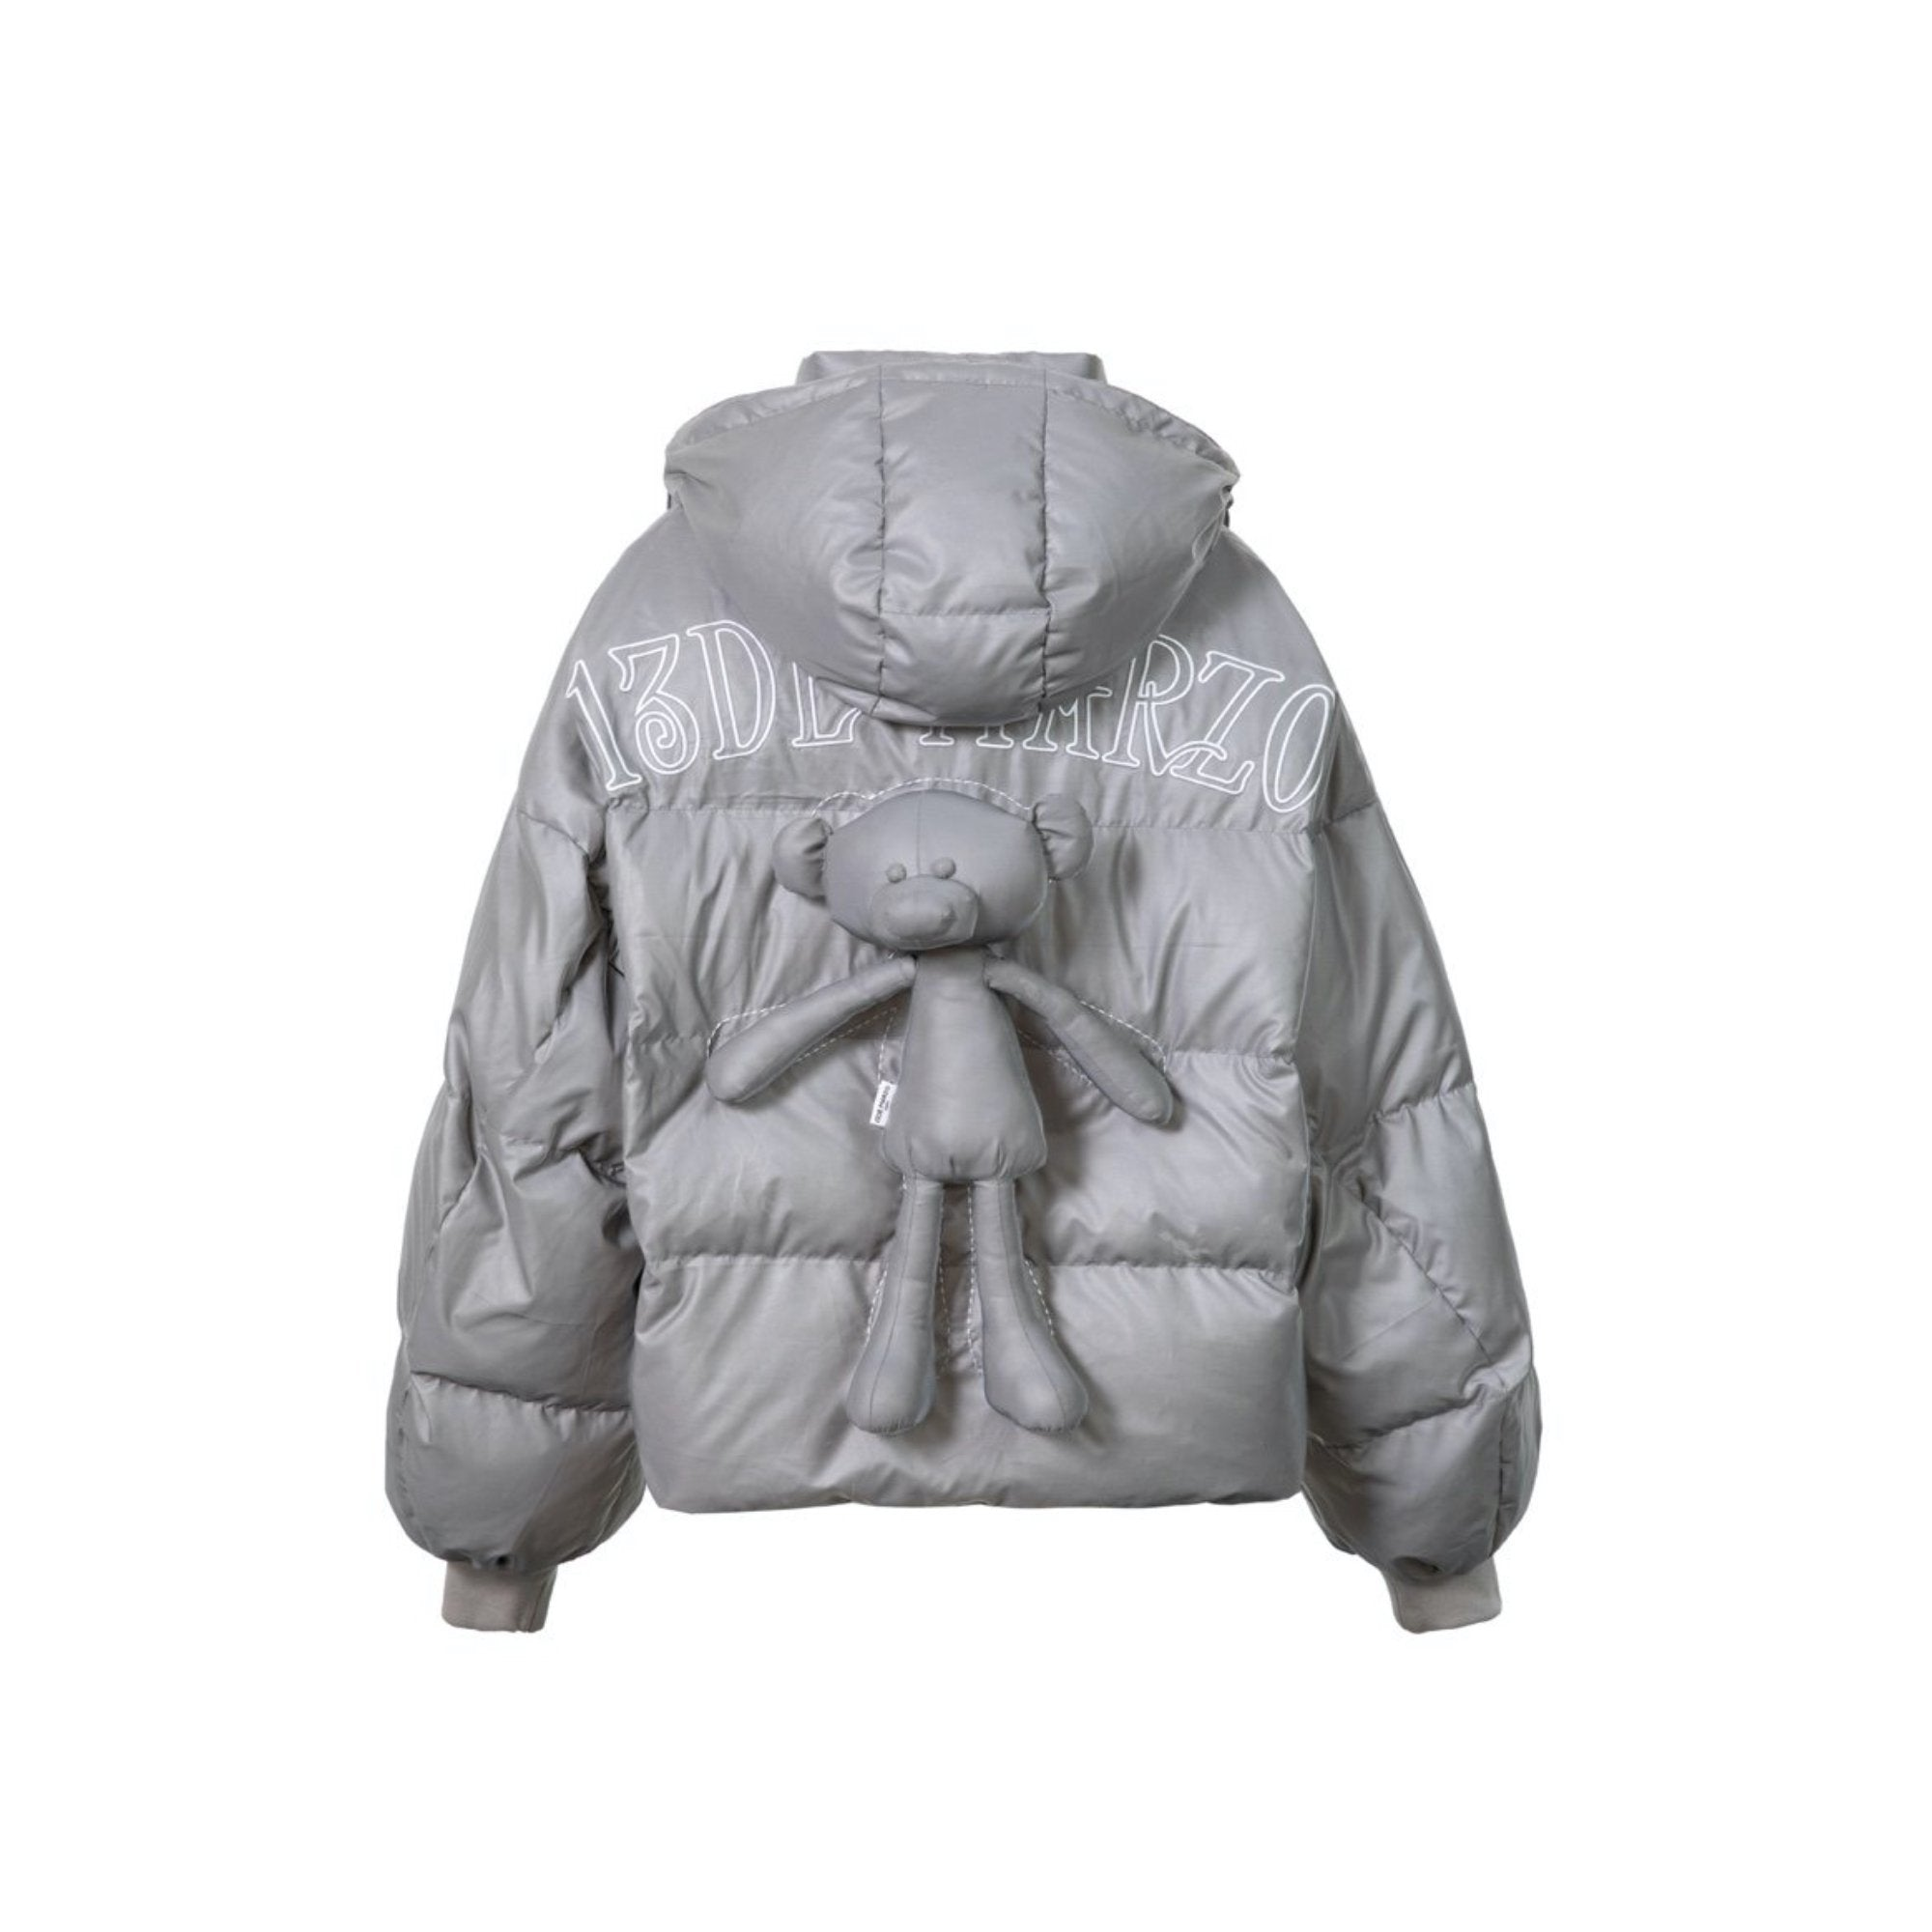 13 DE MARZO Space Journey Teddy Bear Down Jacket 3M | MADA IN CHINA